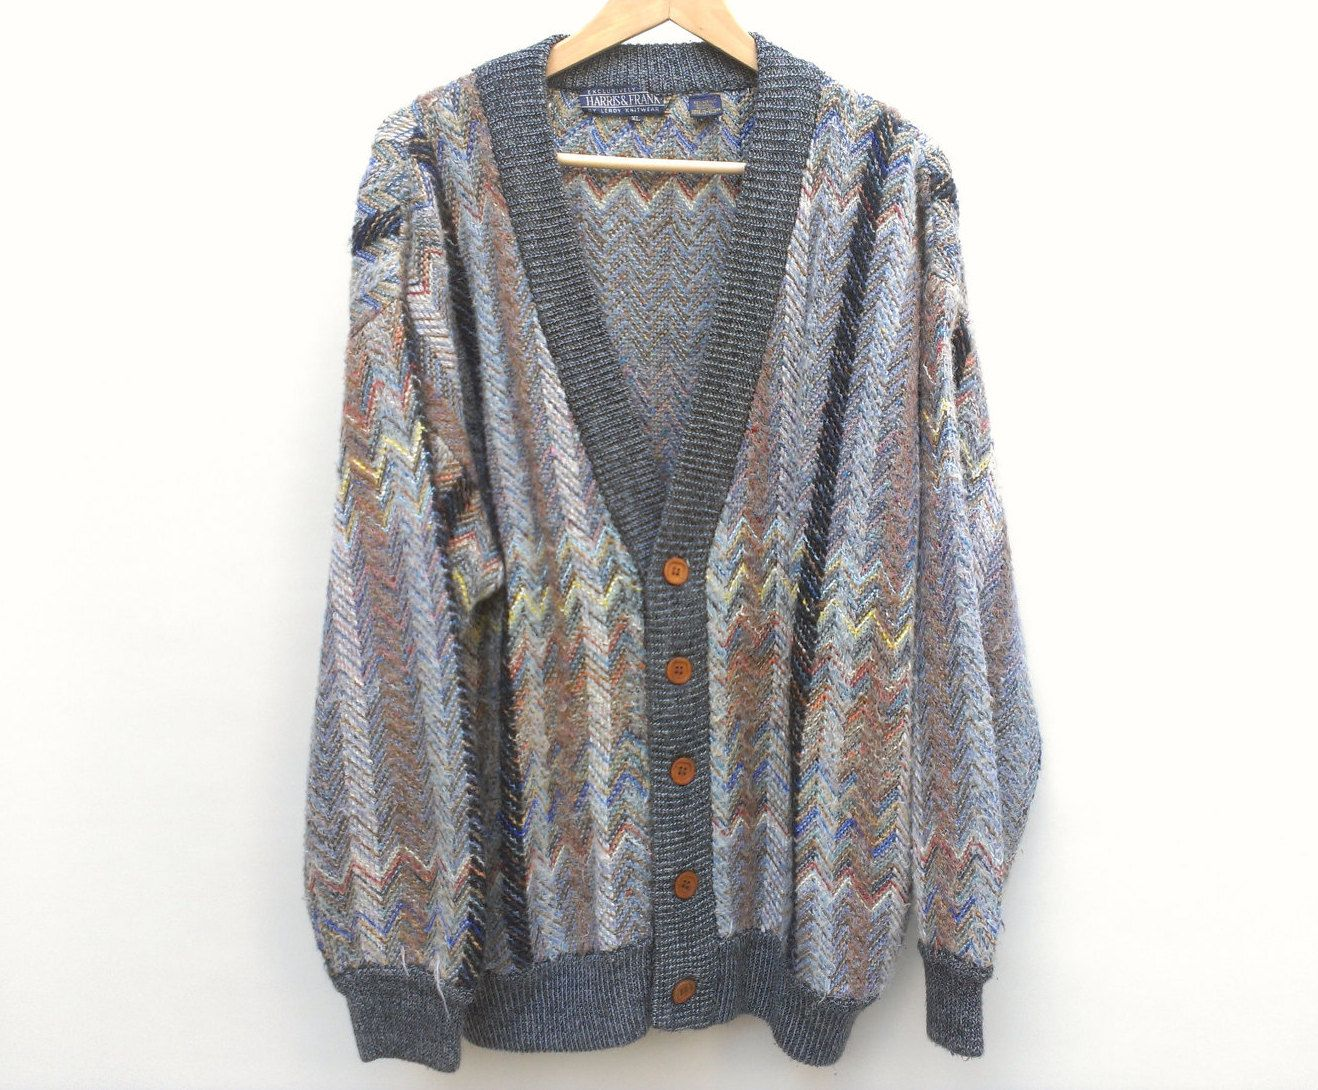 vintage 80s textured chevron pattern cardigan with Wood Buttons - XL. $35.00, via Etsy.